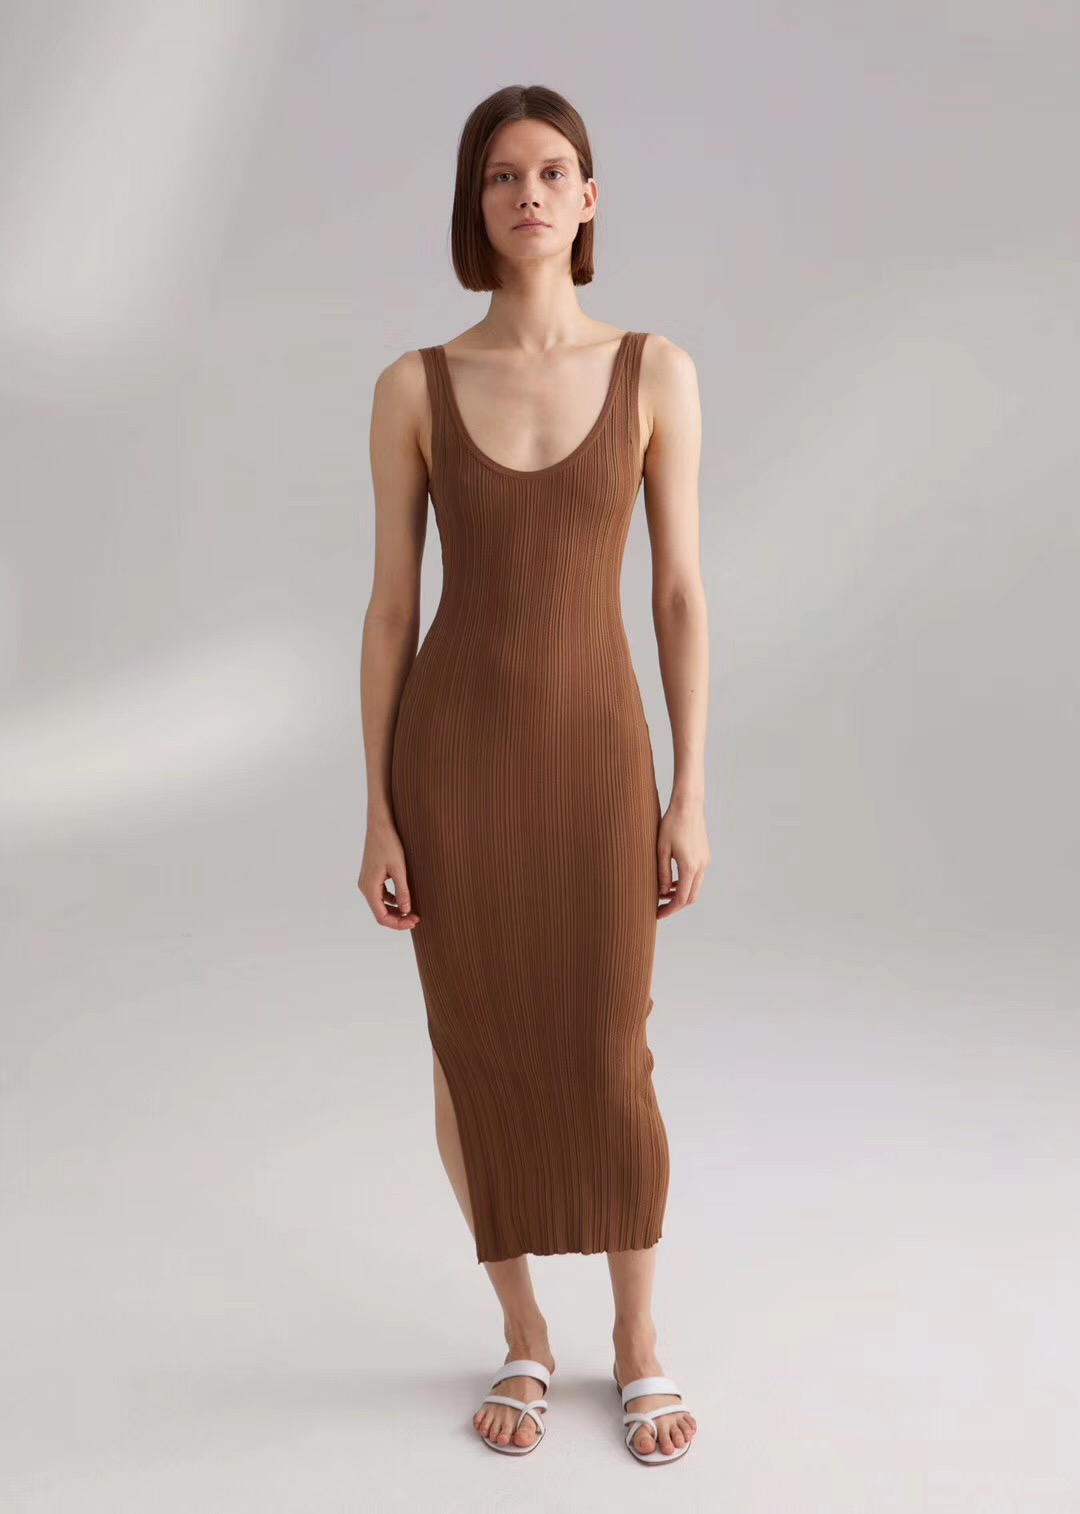 Northern Europe midi dress nougat sleeveless slip dress V neck summer women midi dress